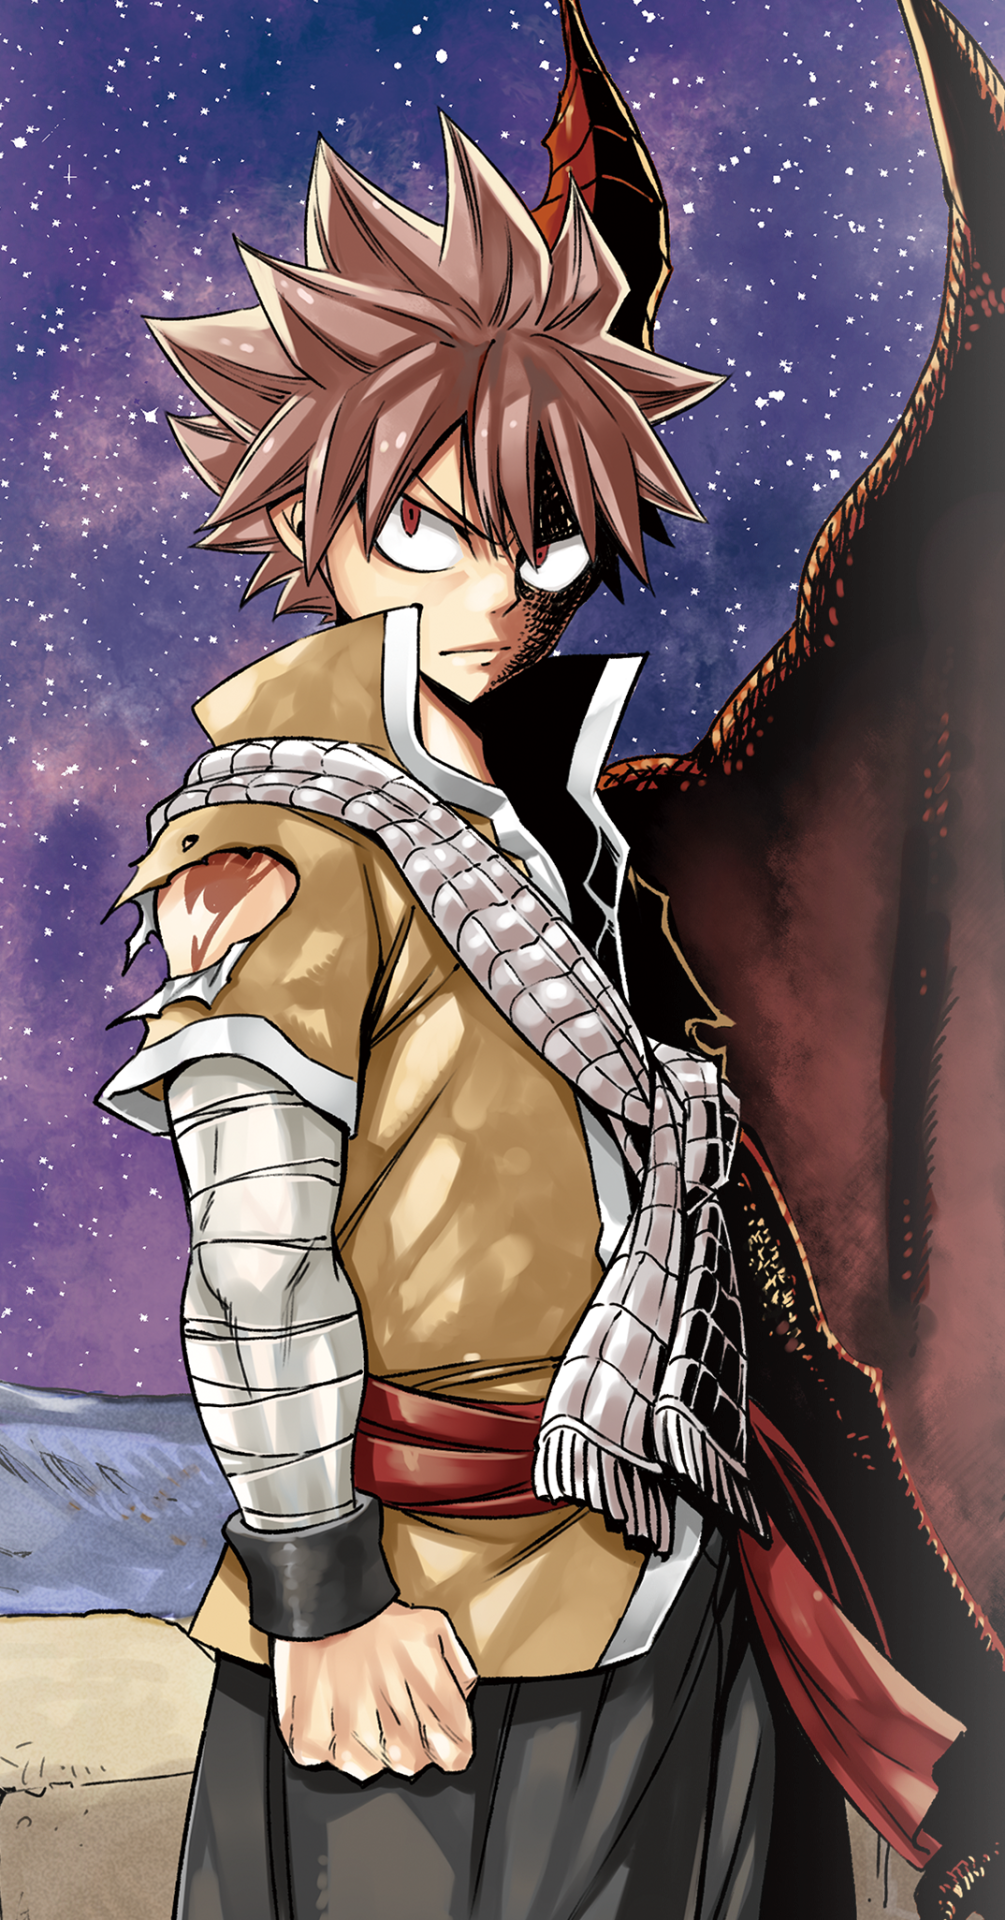 Natsu dragneel genderbend png. In dragon cry the